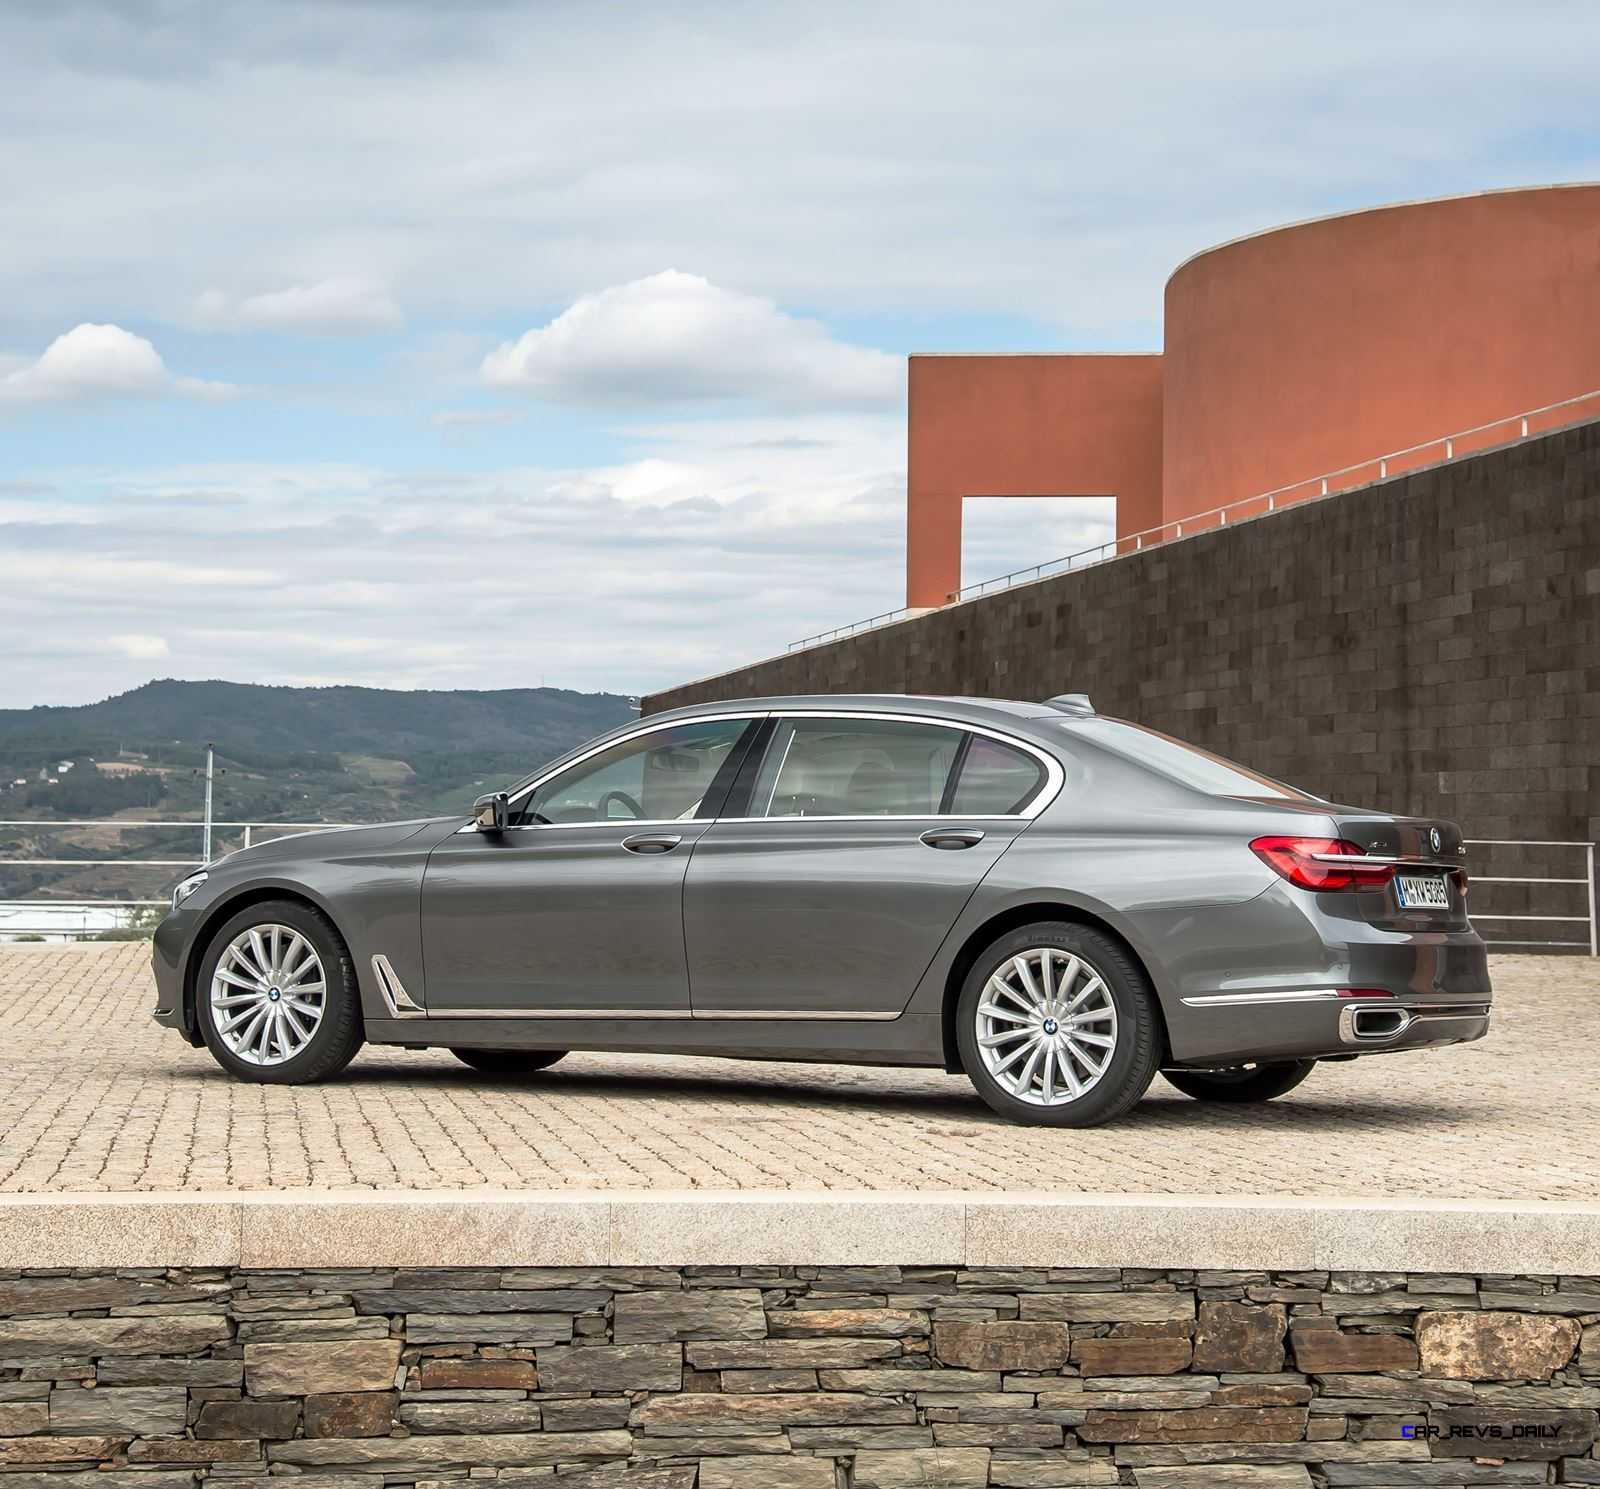 Bmw Exterior: 2016 BMW 750Li Exterior Photos 130